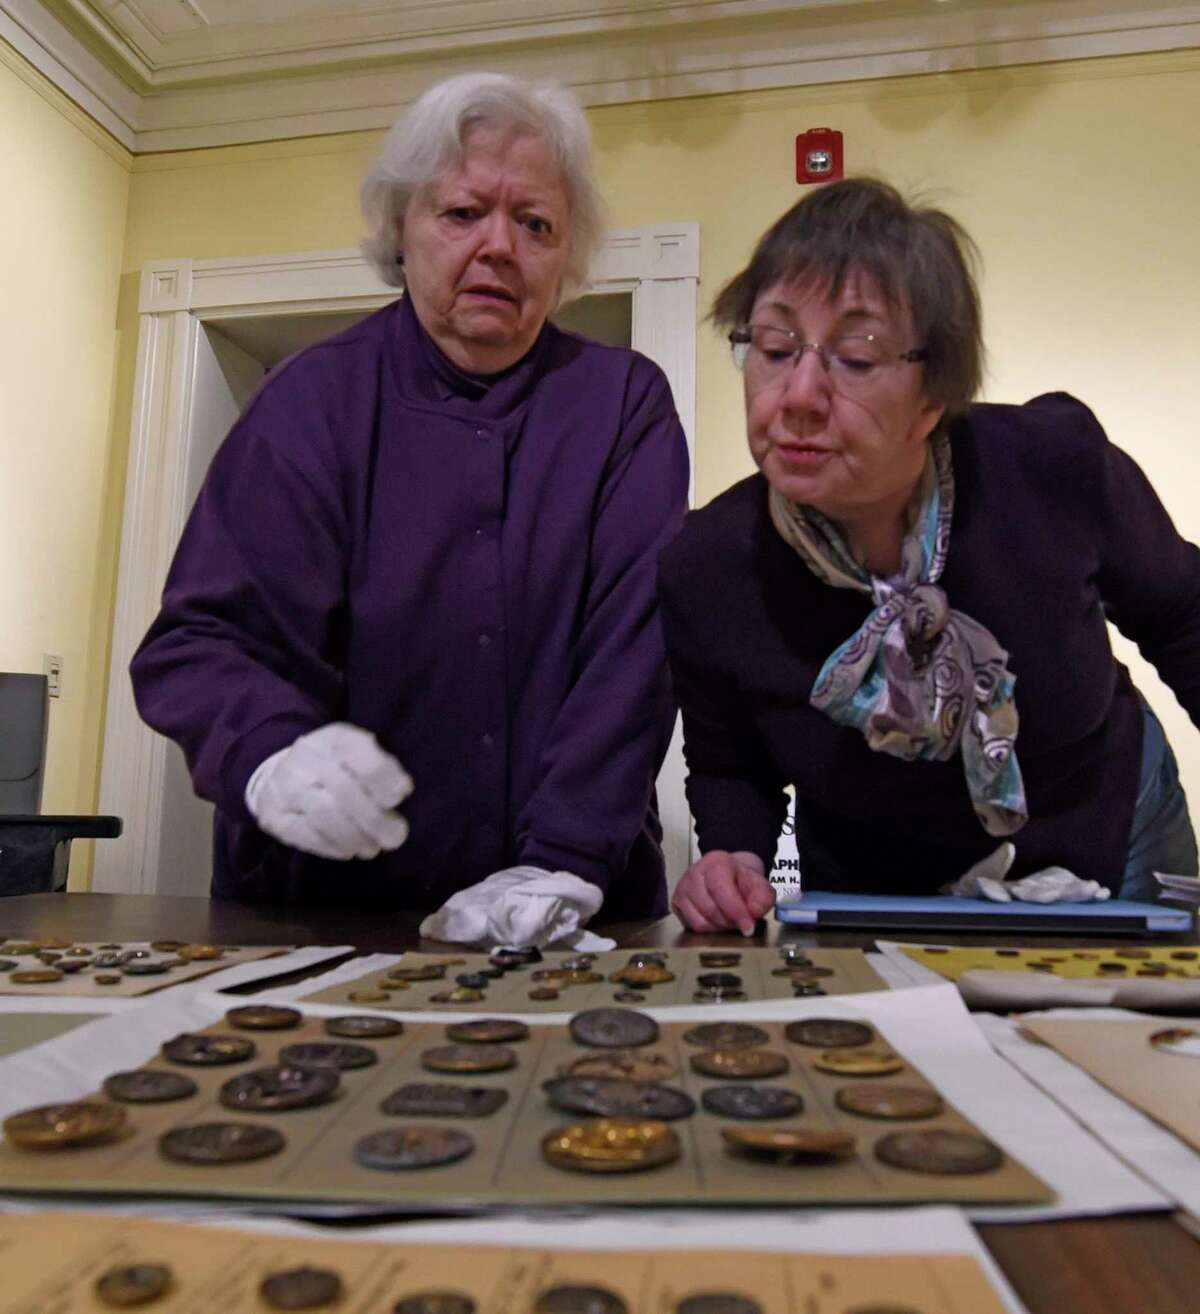 Volunteers June Kosier, left and Kathy Arbogast look over antique buttons for their quality of preservation and their intrinsic value at the Rensselaer County Historical Society Wednesday Feb. 22, 2017 in Troy, N.Y. (Skip Dickstein/Times Union)